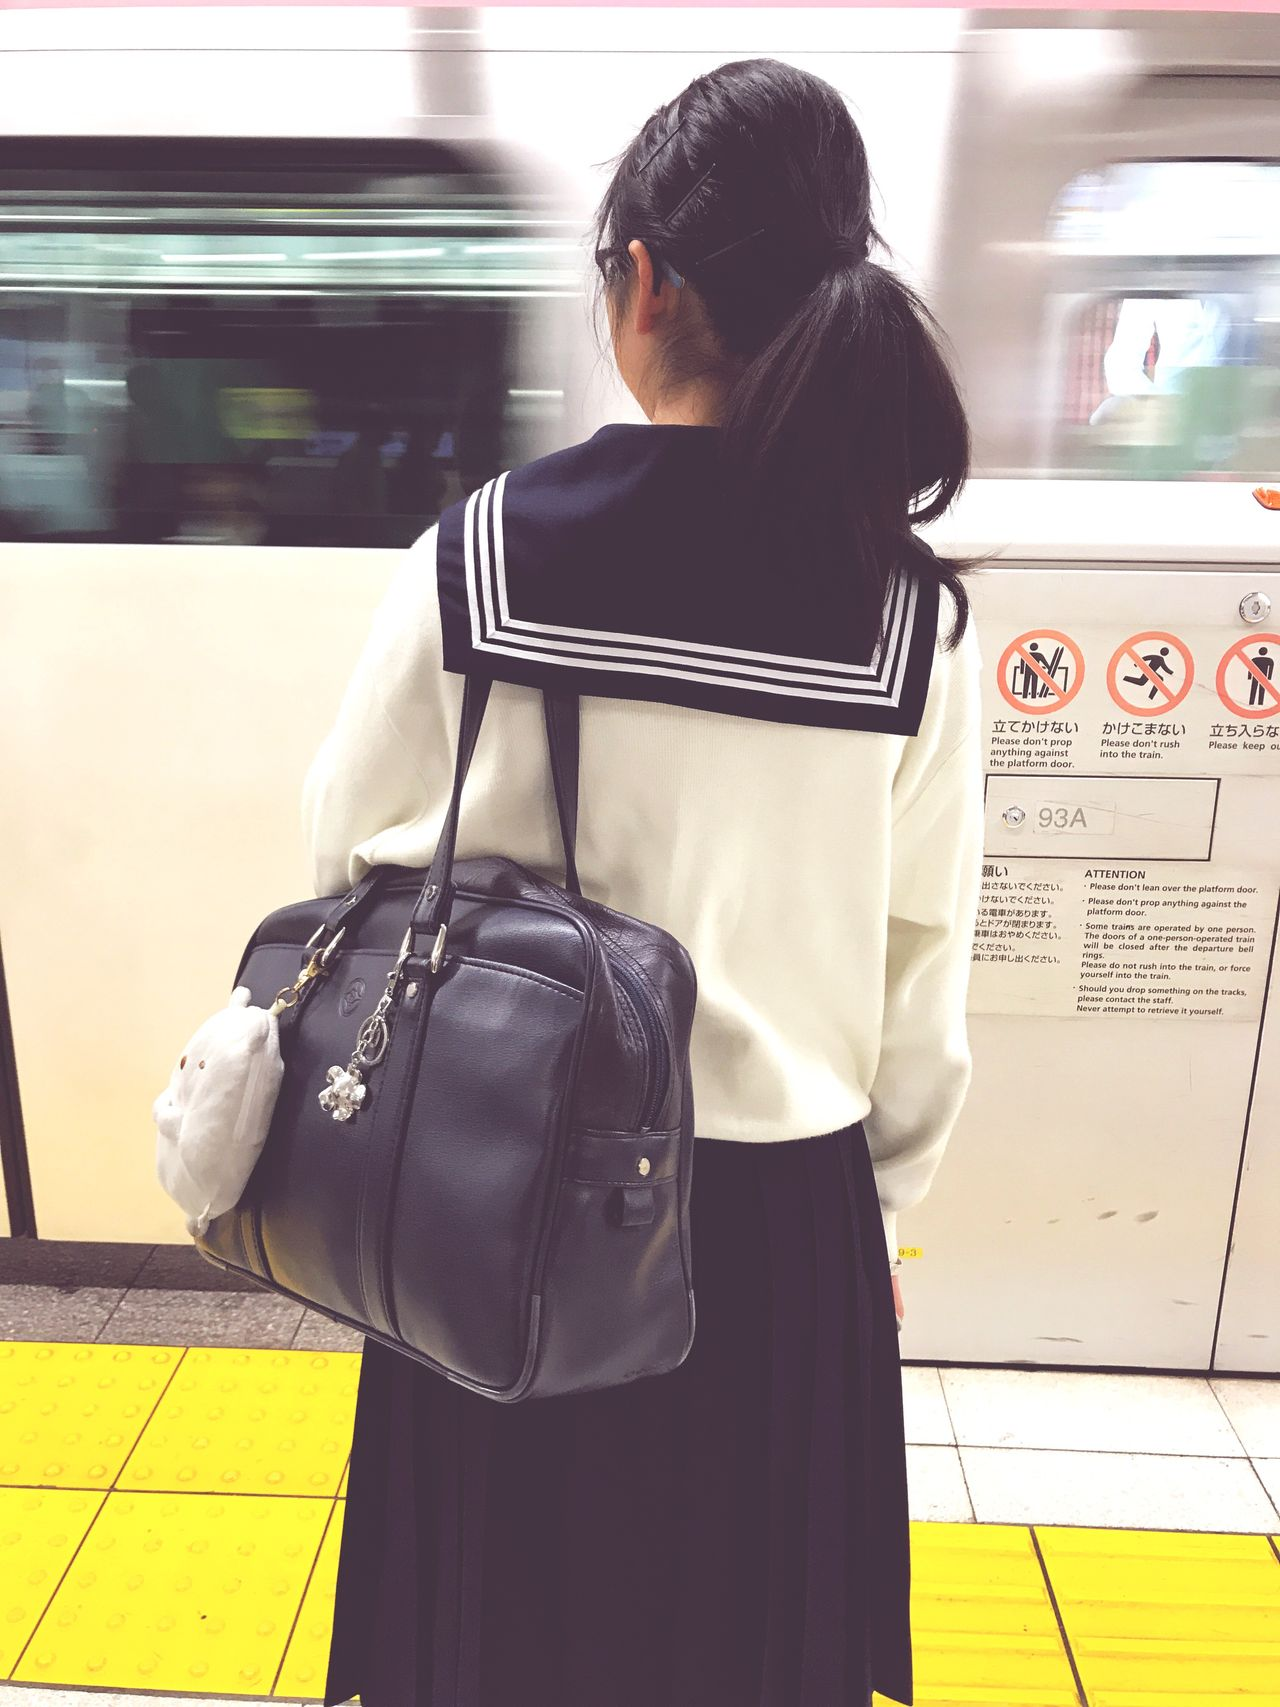 Rear View Real People Bag One Person Lifestyles Casual Clothing Standing Public Transportation Backpack Purse Journey Women Railroad Station Transportation Travel Luggage Indoors  Subway Train Day Technology Metro Metropolitan Metro Station Japan EyeEmNewHere